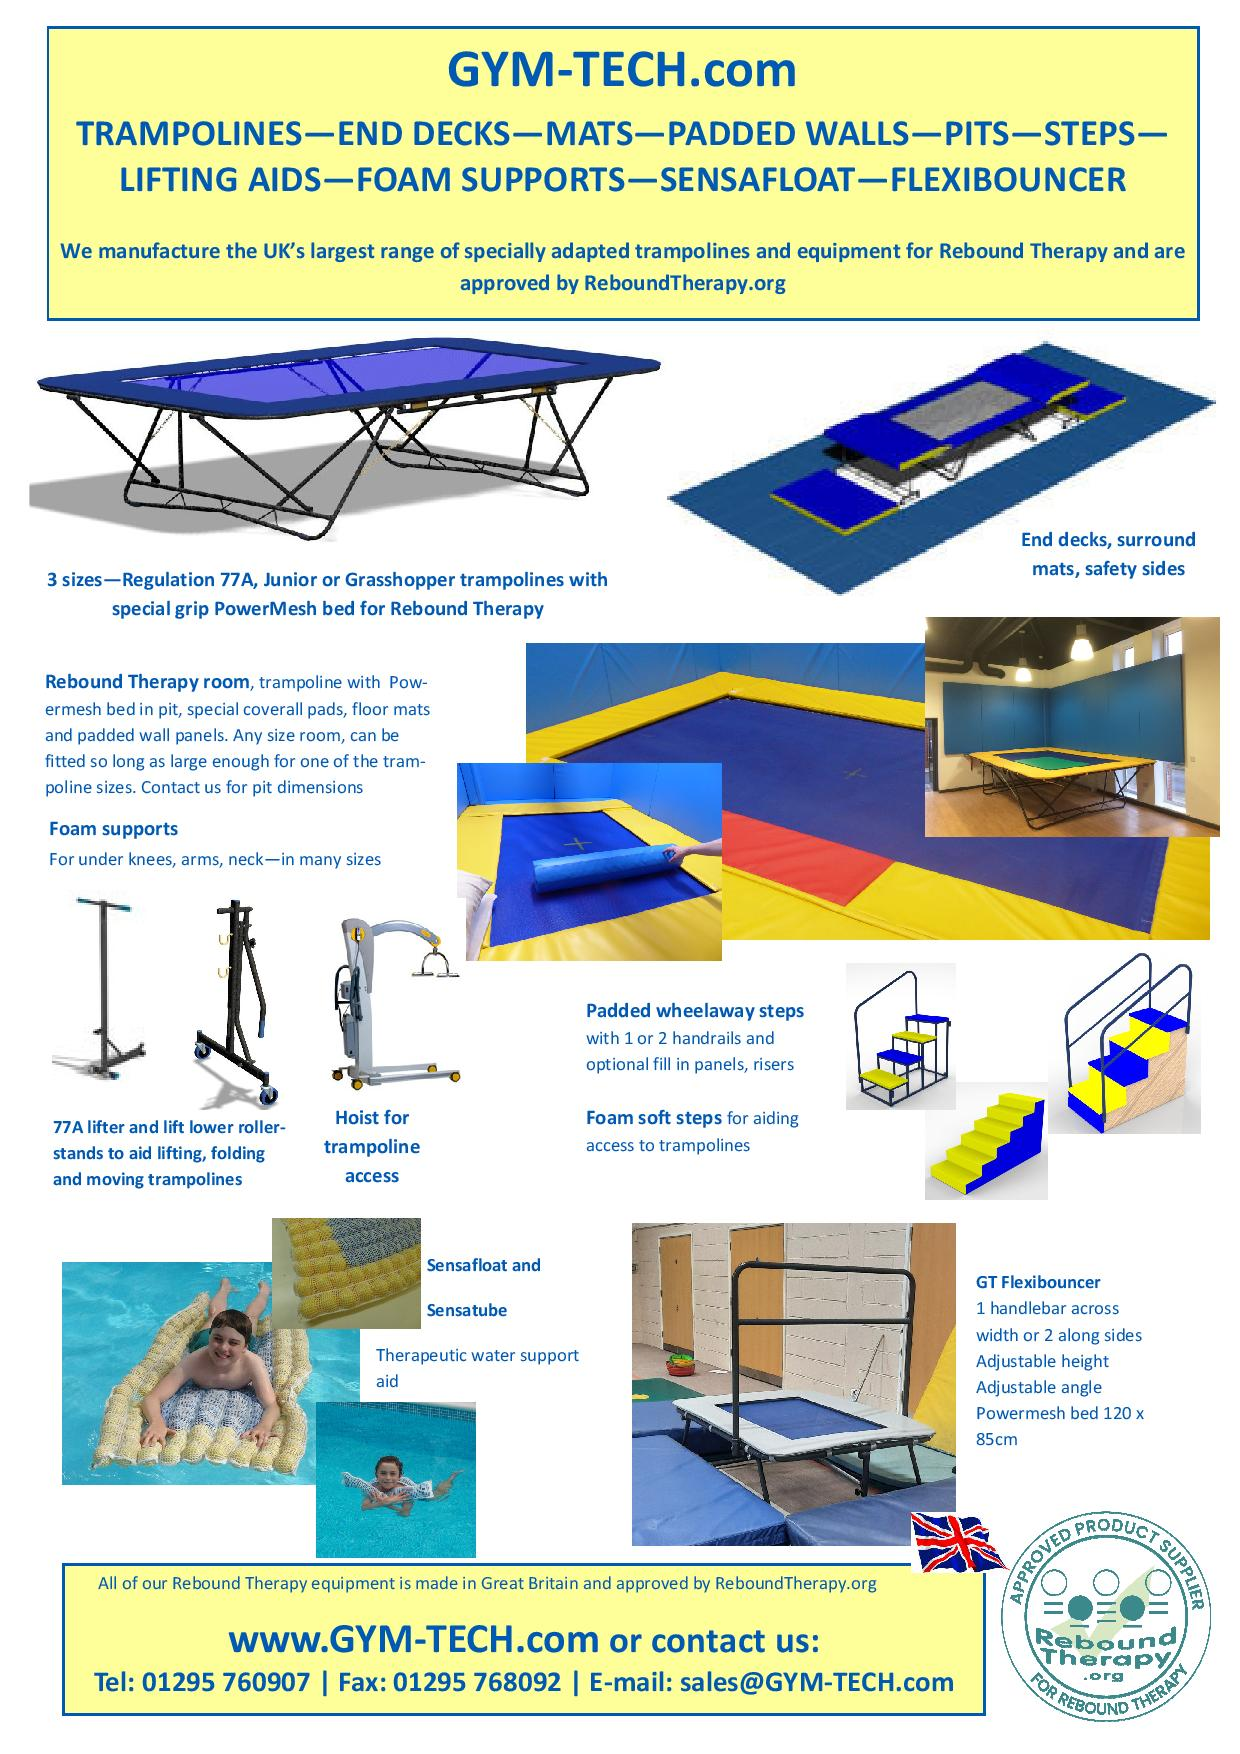 Trampolines and Equipment